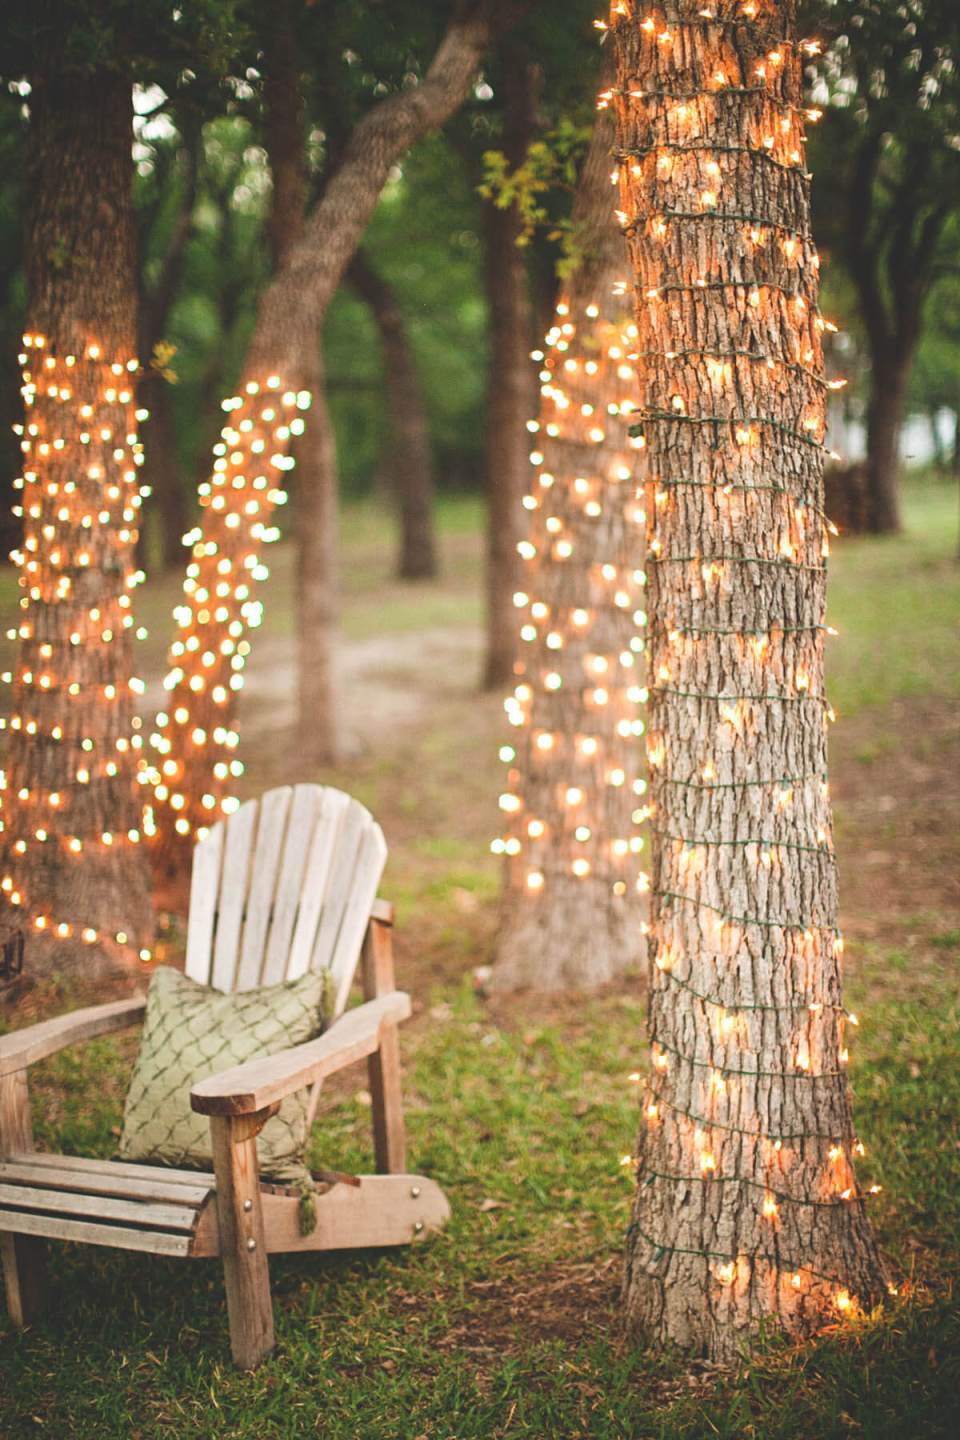 Vintage Garden Decor Ideas: String Lights Wrapped Around Backyard Trees